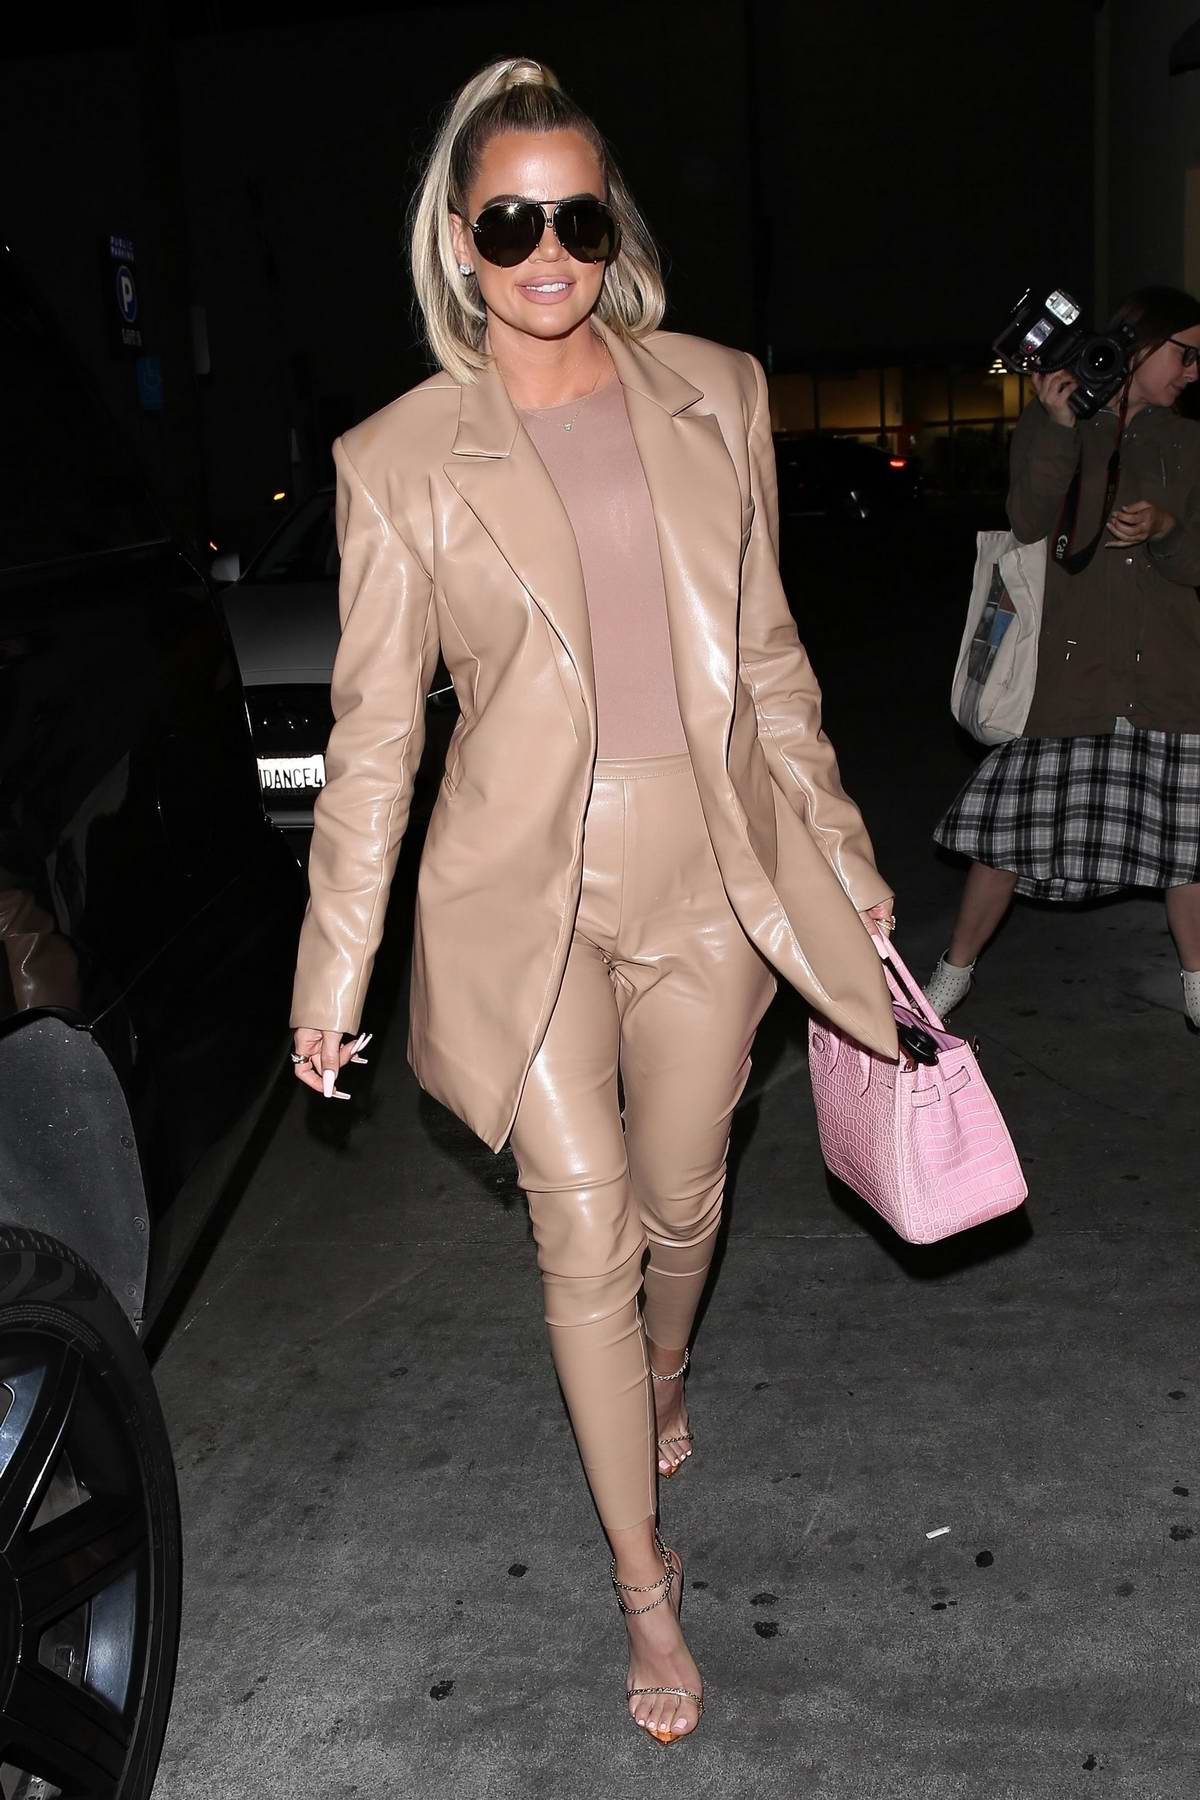 Khloe Kardashian spotted in a beige leather suit as she arrives at Carousel restaurant in Glendale, California